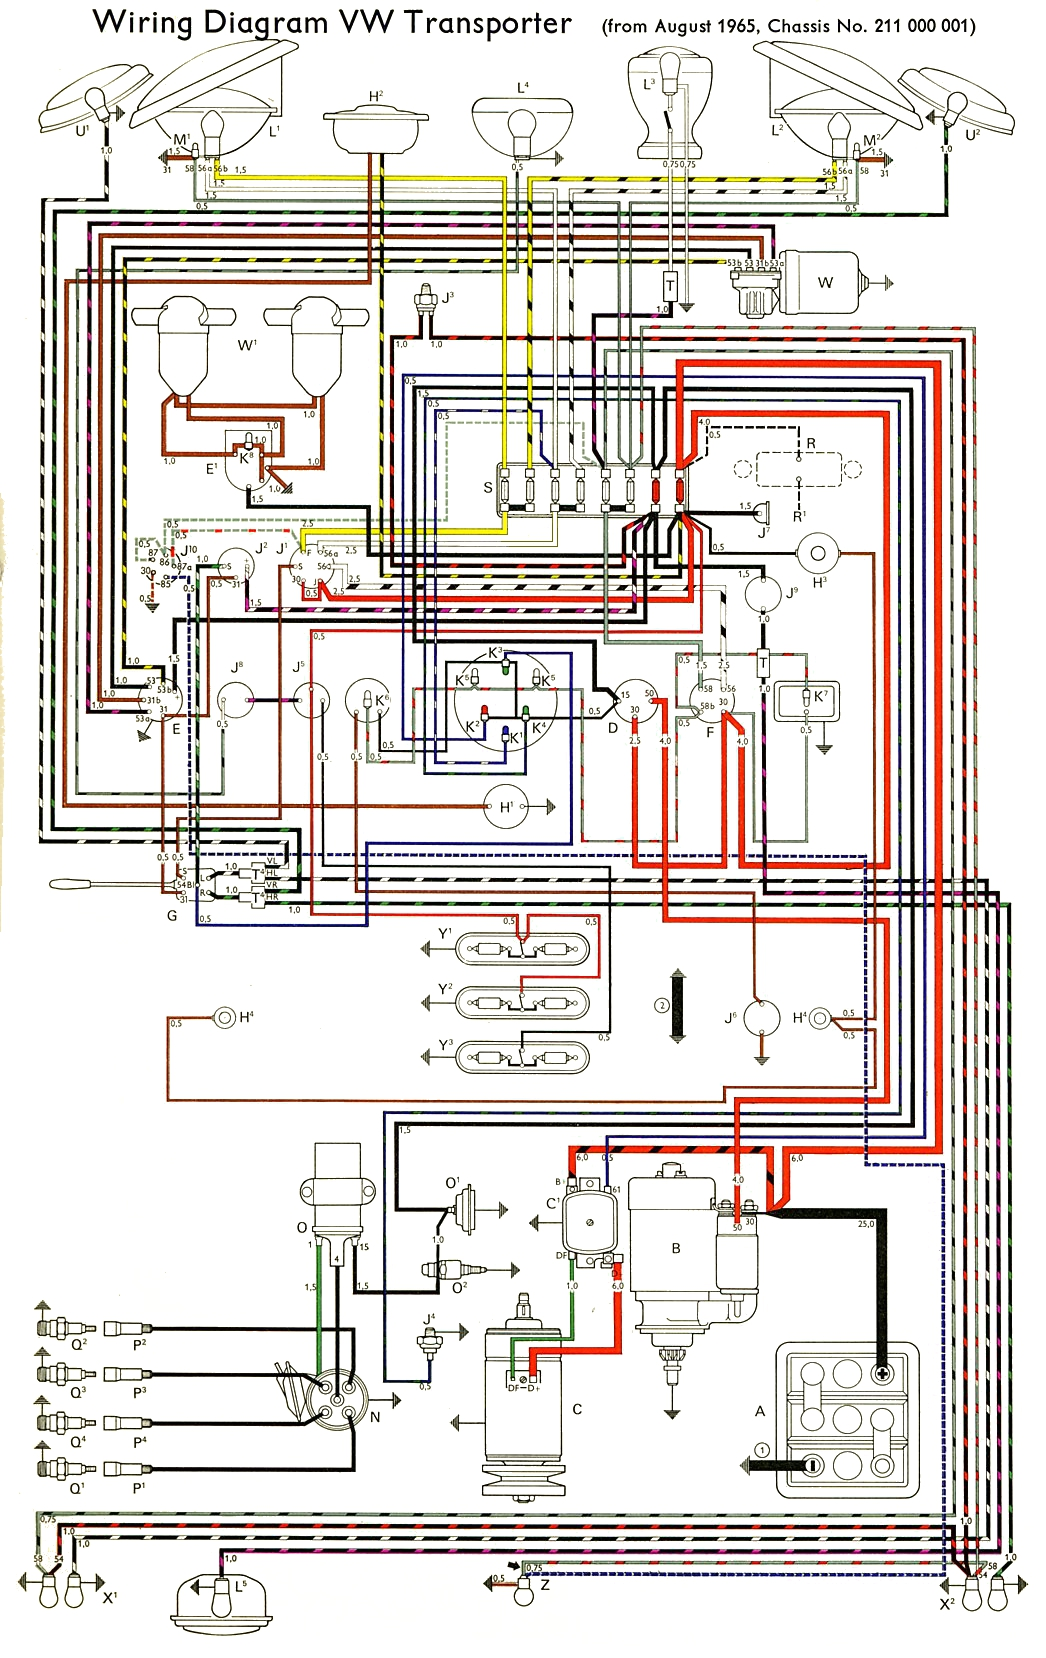 1968 Mg Midget Wiring Diagram Library 1973 1957 Another Diagrams U2022 Rh Benpaterson Co Uk 1955 1958